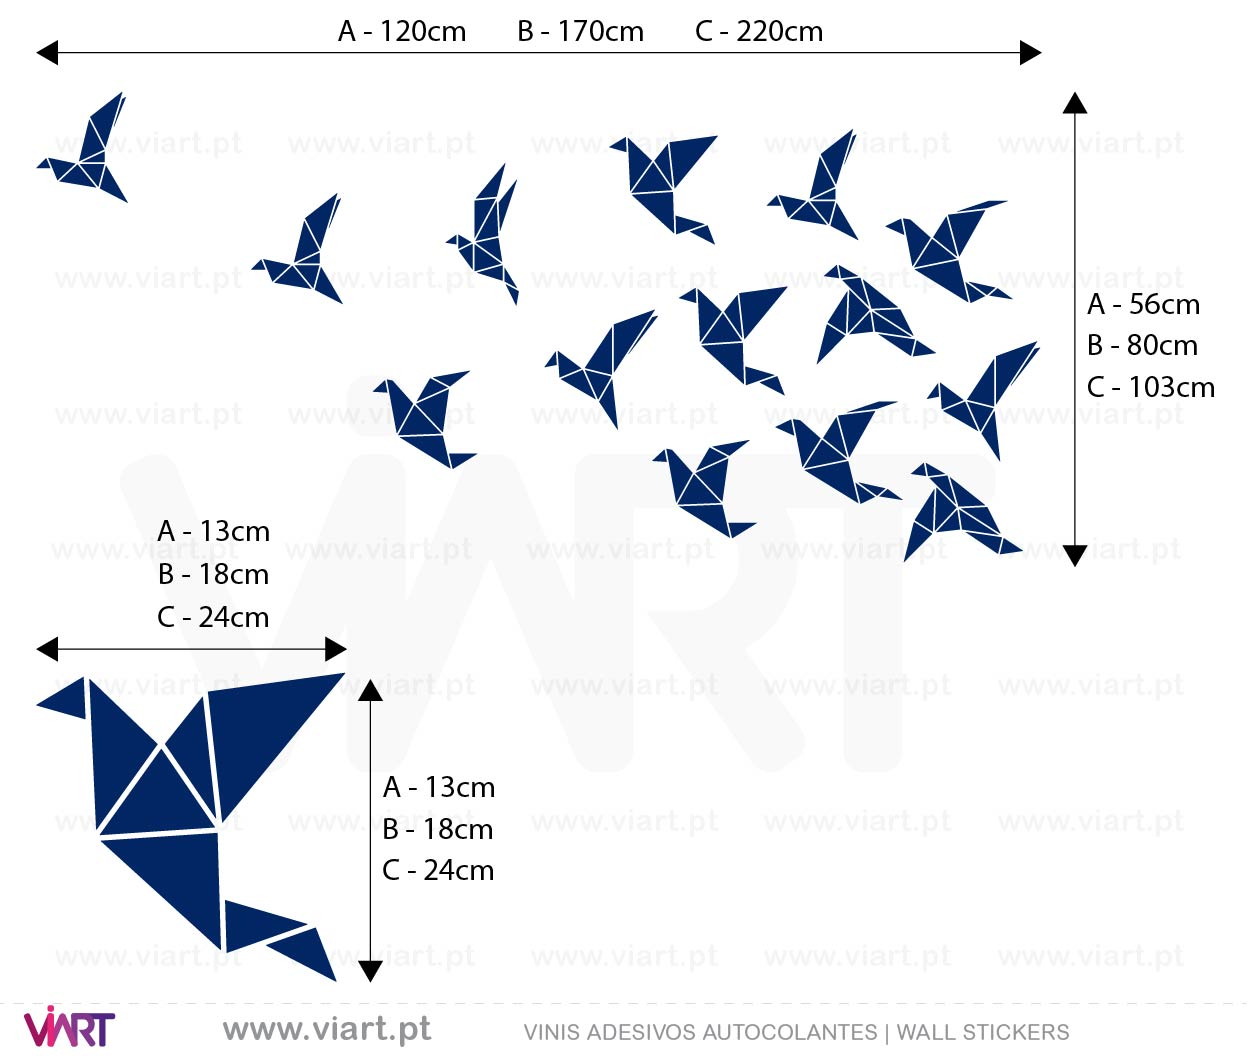 Drawn Origami Flock Of Birds 2 Wall Stickers Wall Art